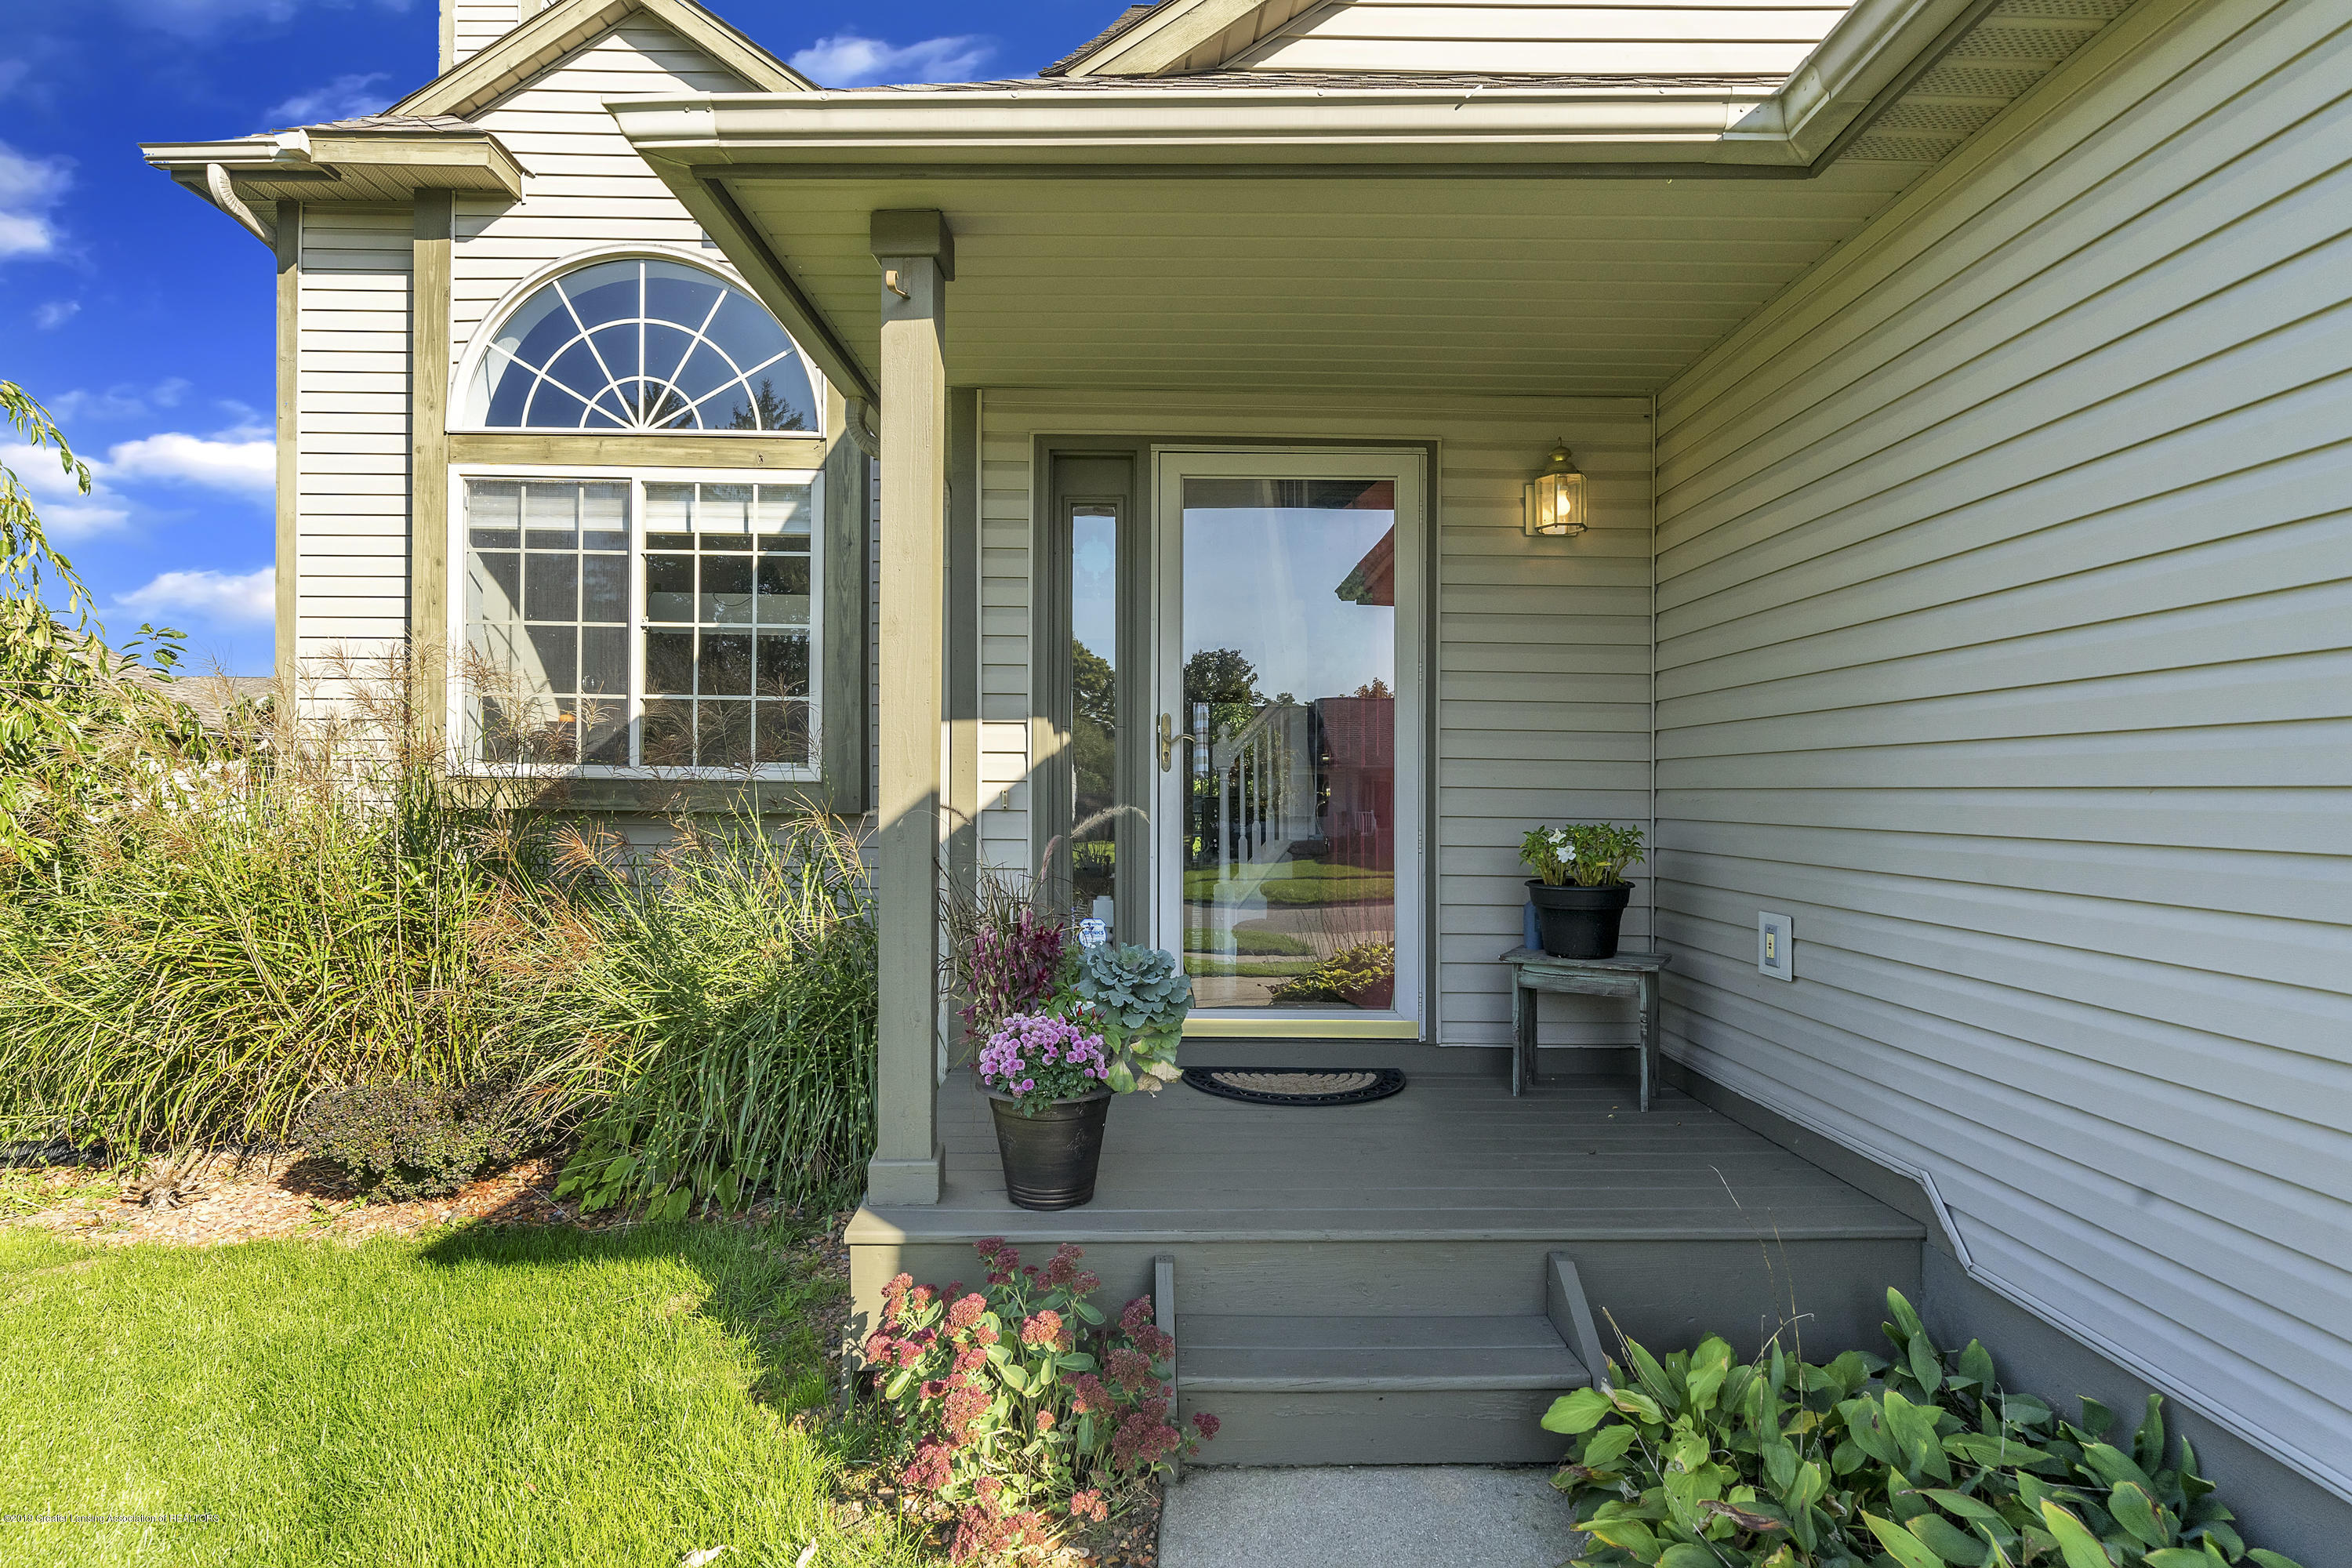 1258 Sumac Ln - 1258-Sumac-WindowStill-Real-Estate-Photo - 5